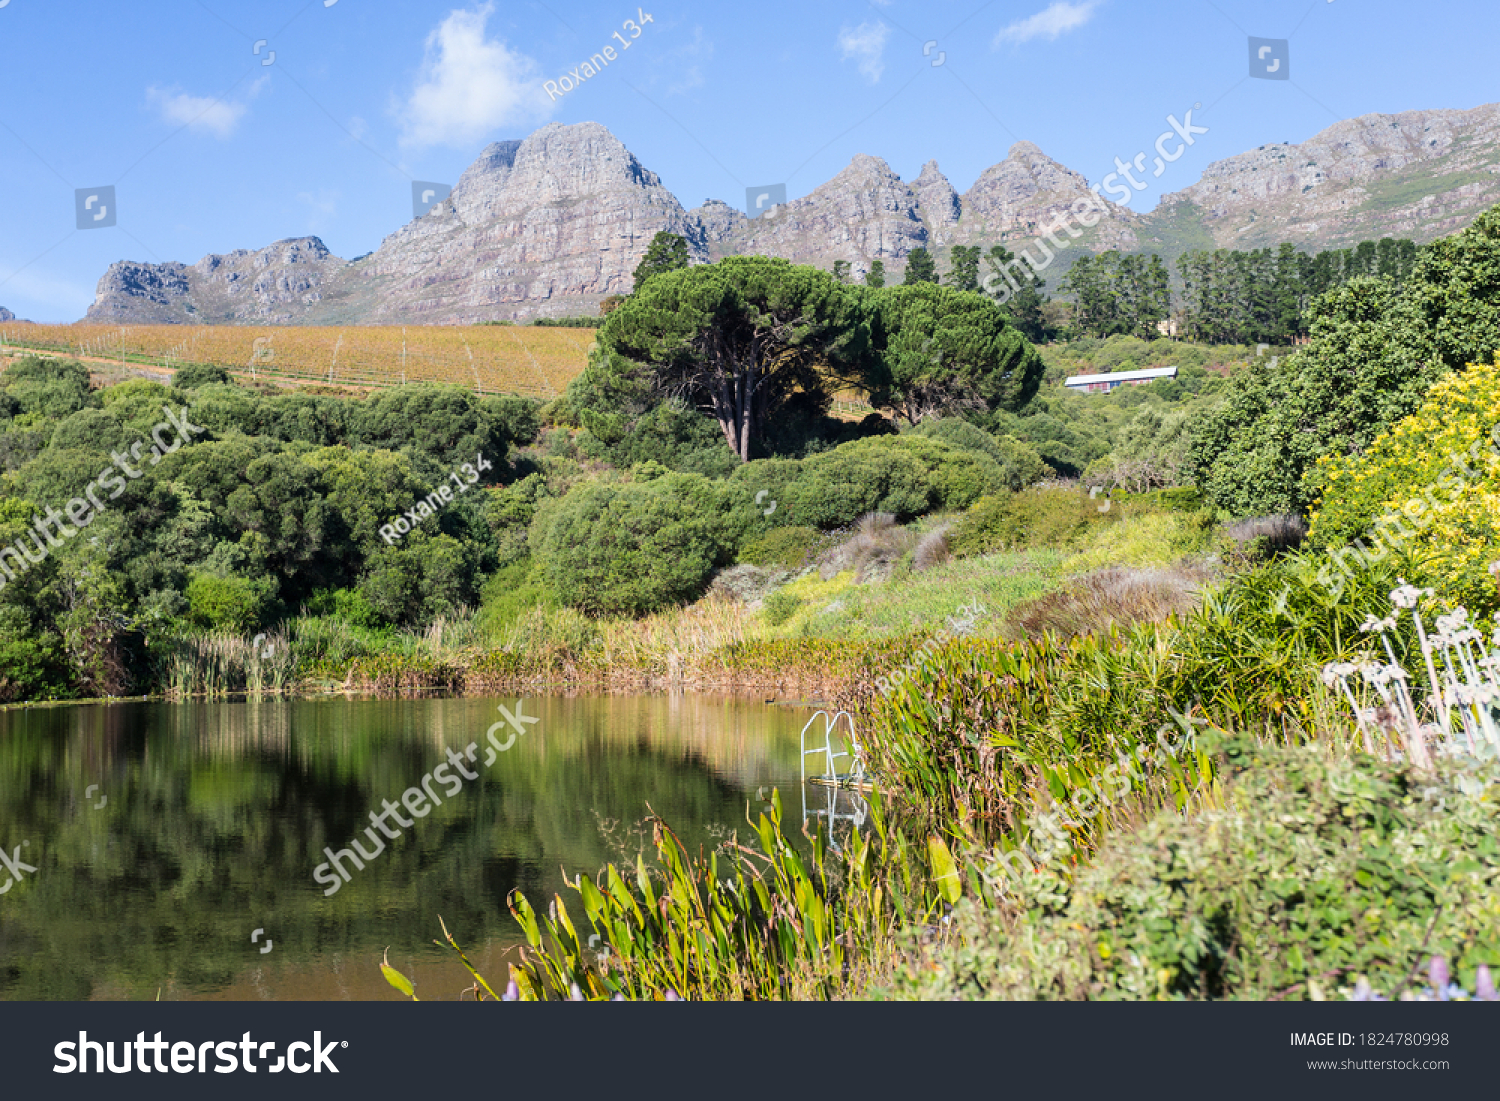 landscape view of a lake and lush vegetation against a backdrop of mountains at a wine estate in Stellenbosch, Cape Winelands, South Africa